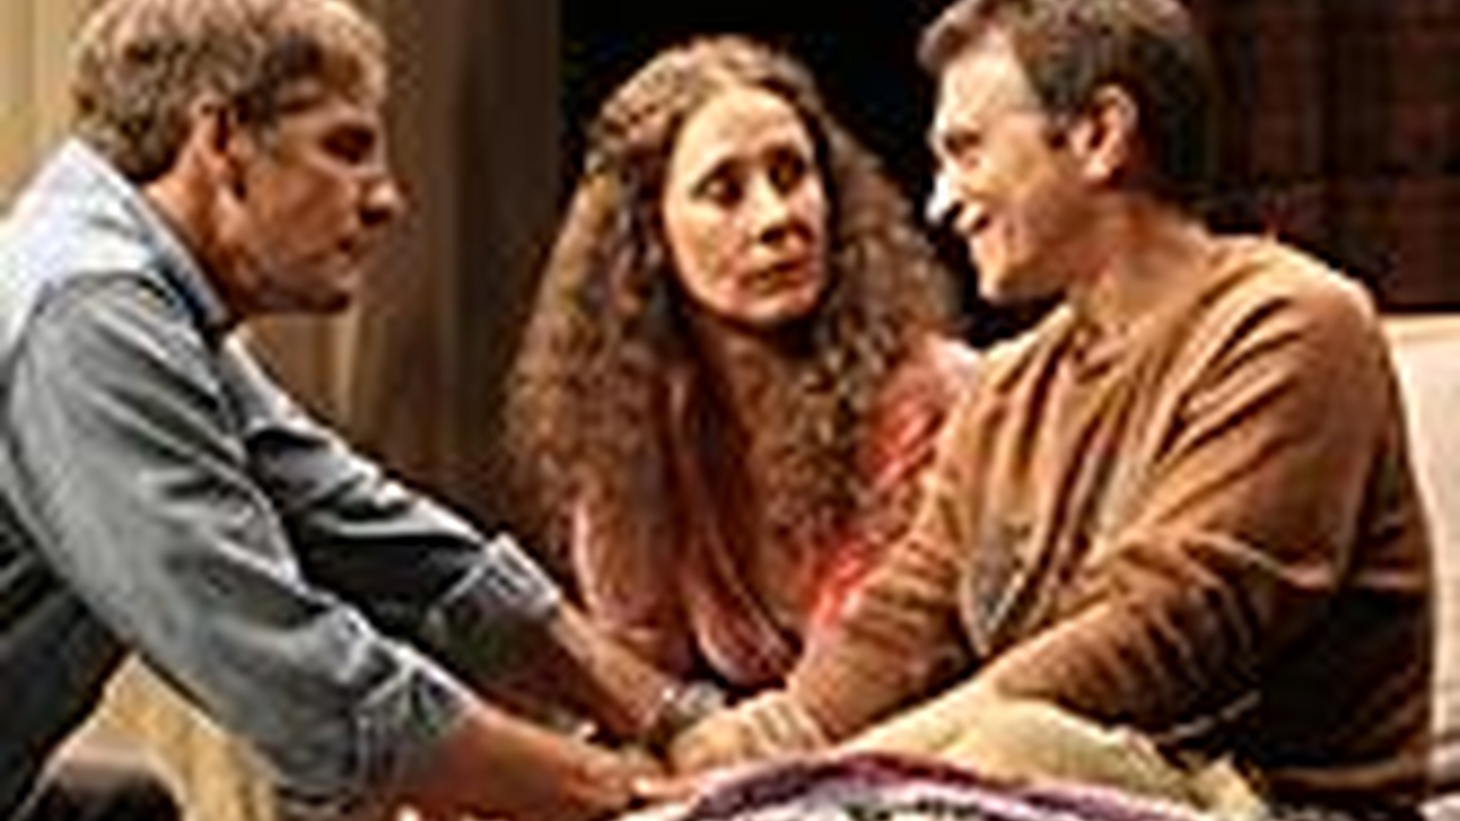 This month, Westwood's Geffen Playhouse is home to two works by women playwrights about the harsh reality of death. The first, a World Premiere by Jane Anderson, is titled The Quality of Life. It's a short, relatively cogent drama about two couples: one dealing with the death of a loved one that recently happened, the other dealing with the death of a loved one that's about to happen...